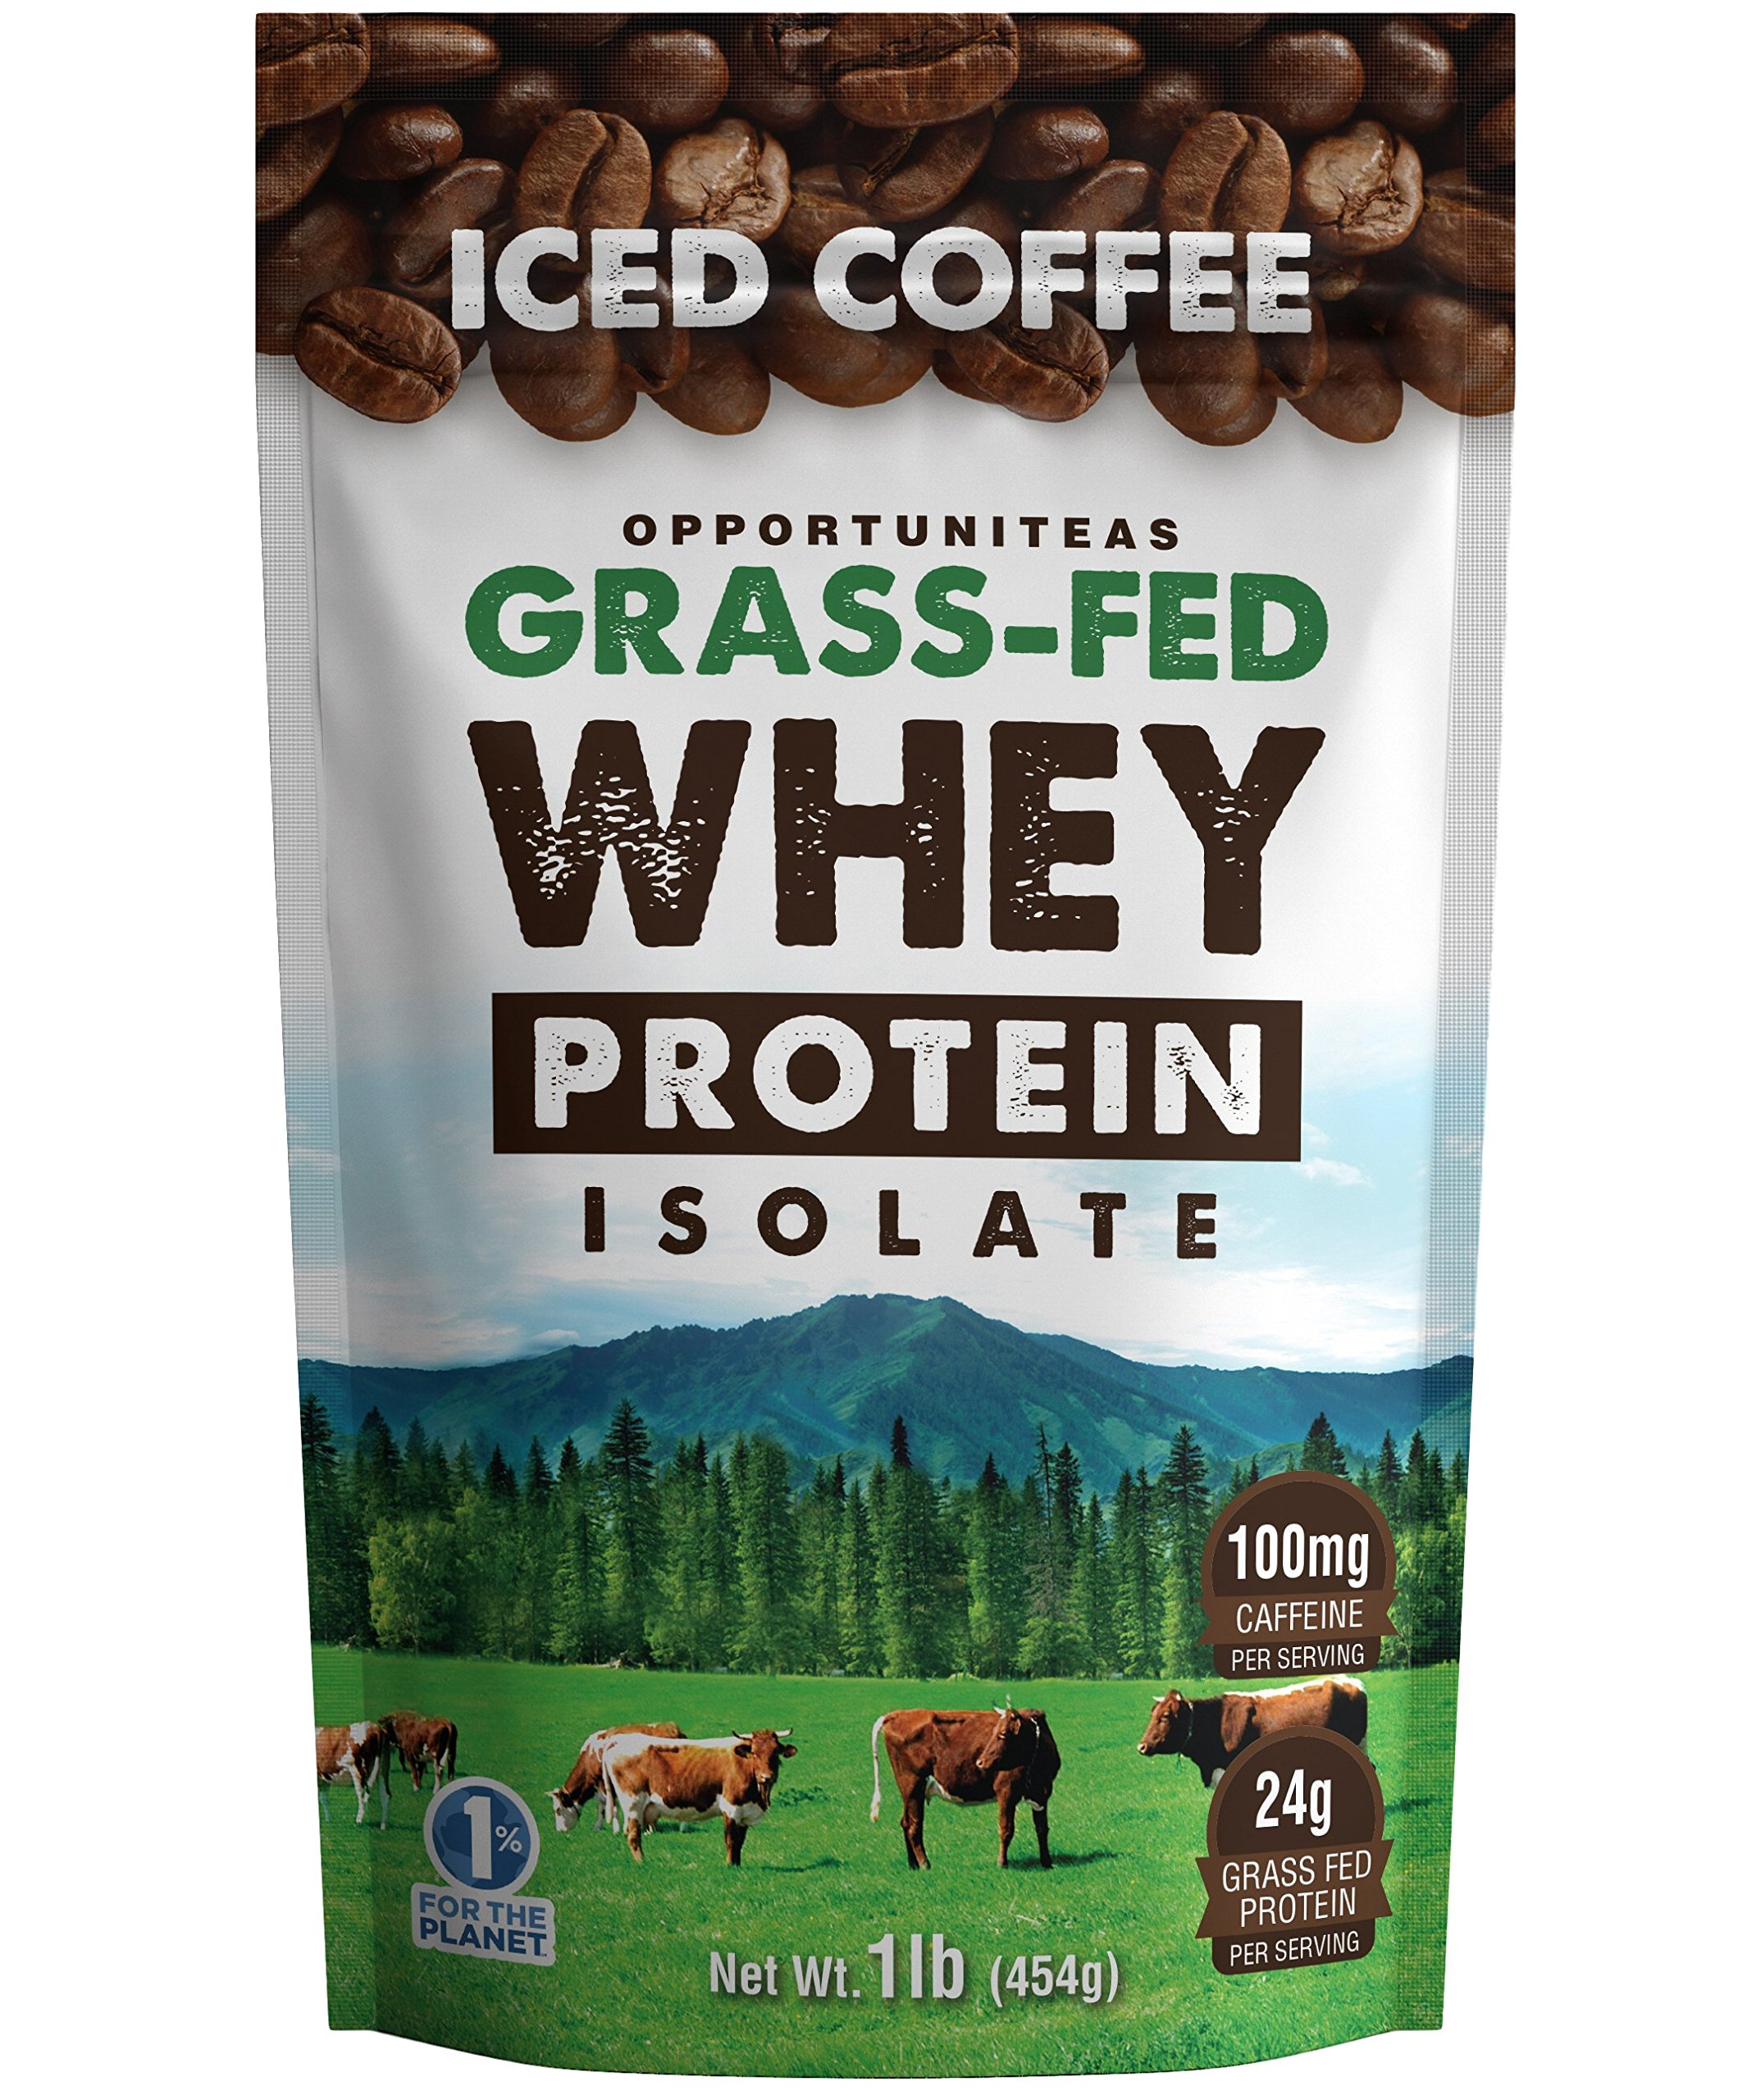 High Protein Coffee Powder - Healthy Grass Fed Whey Isolate + Delicious Colombian Coffee - All Natural Pre Or Post Workout Drink Mix Shake - No Added Sugar, Sweetener, Soy, GMO or Gluten - 1 lb